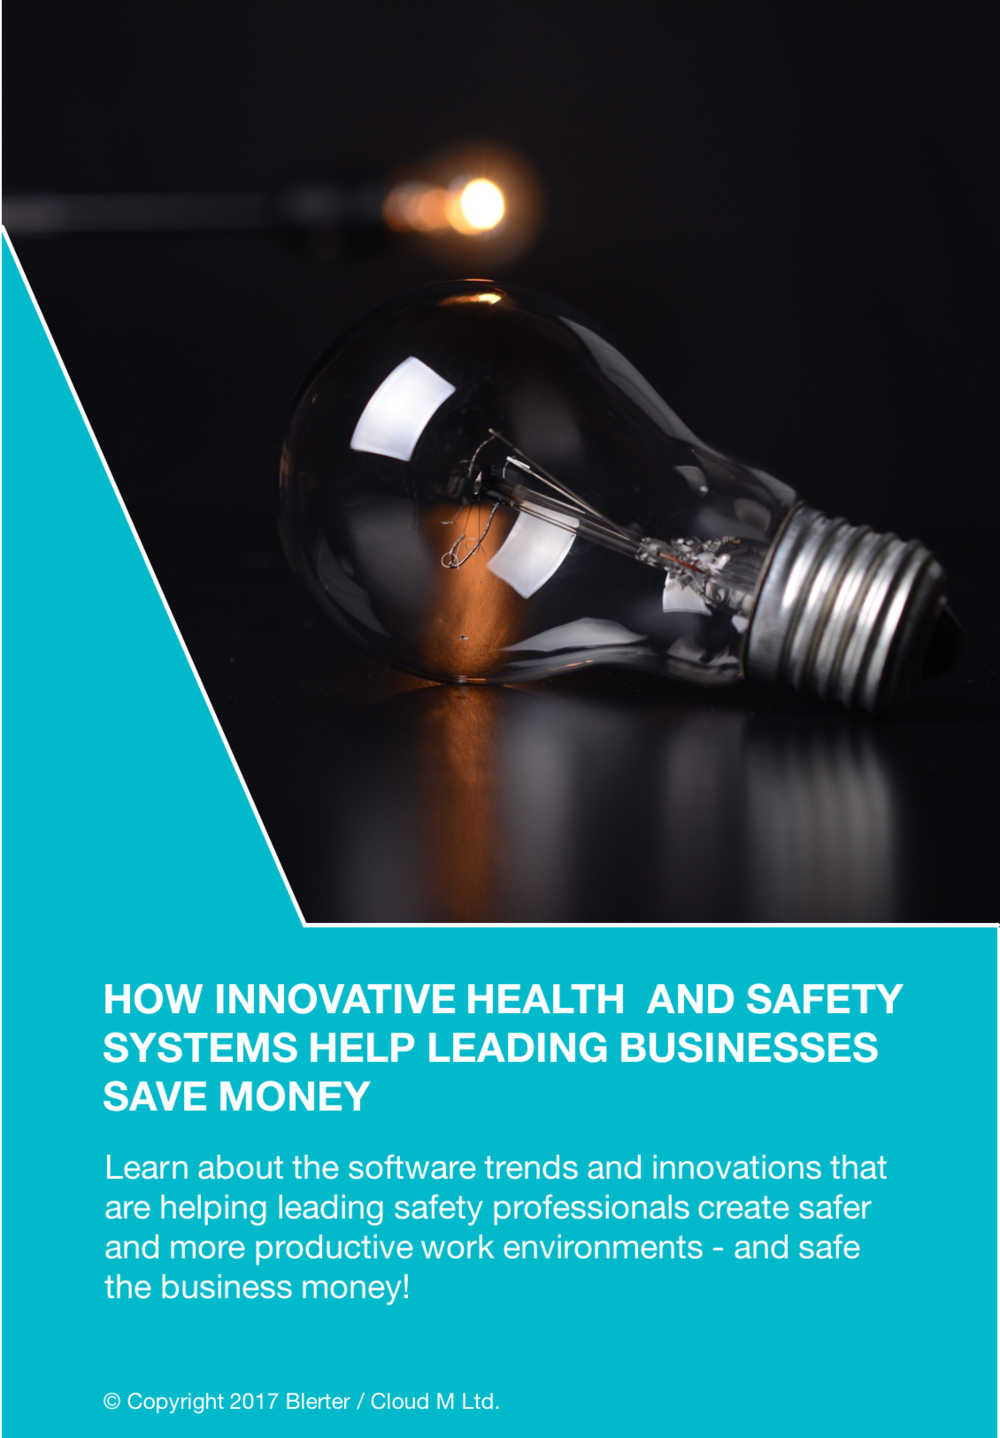 health and safety software that saves money